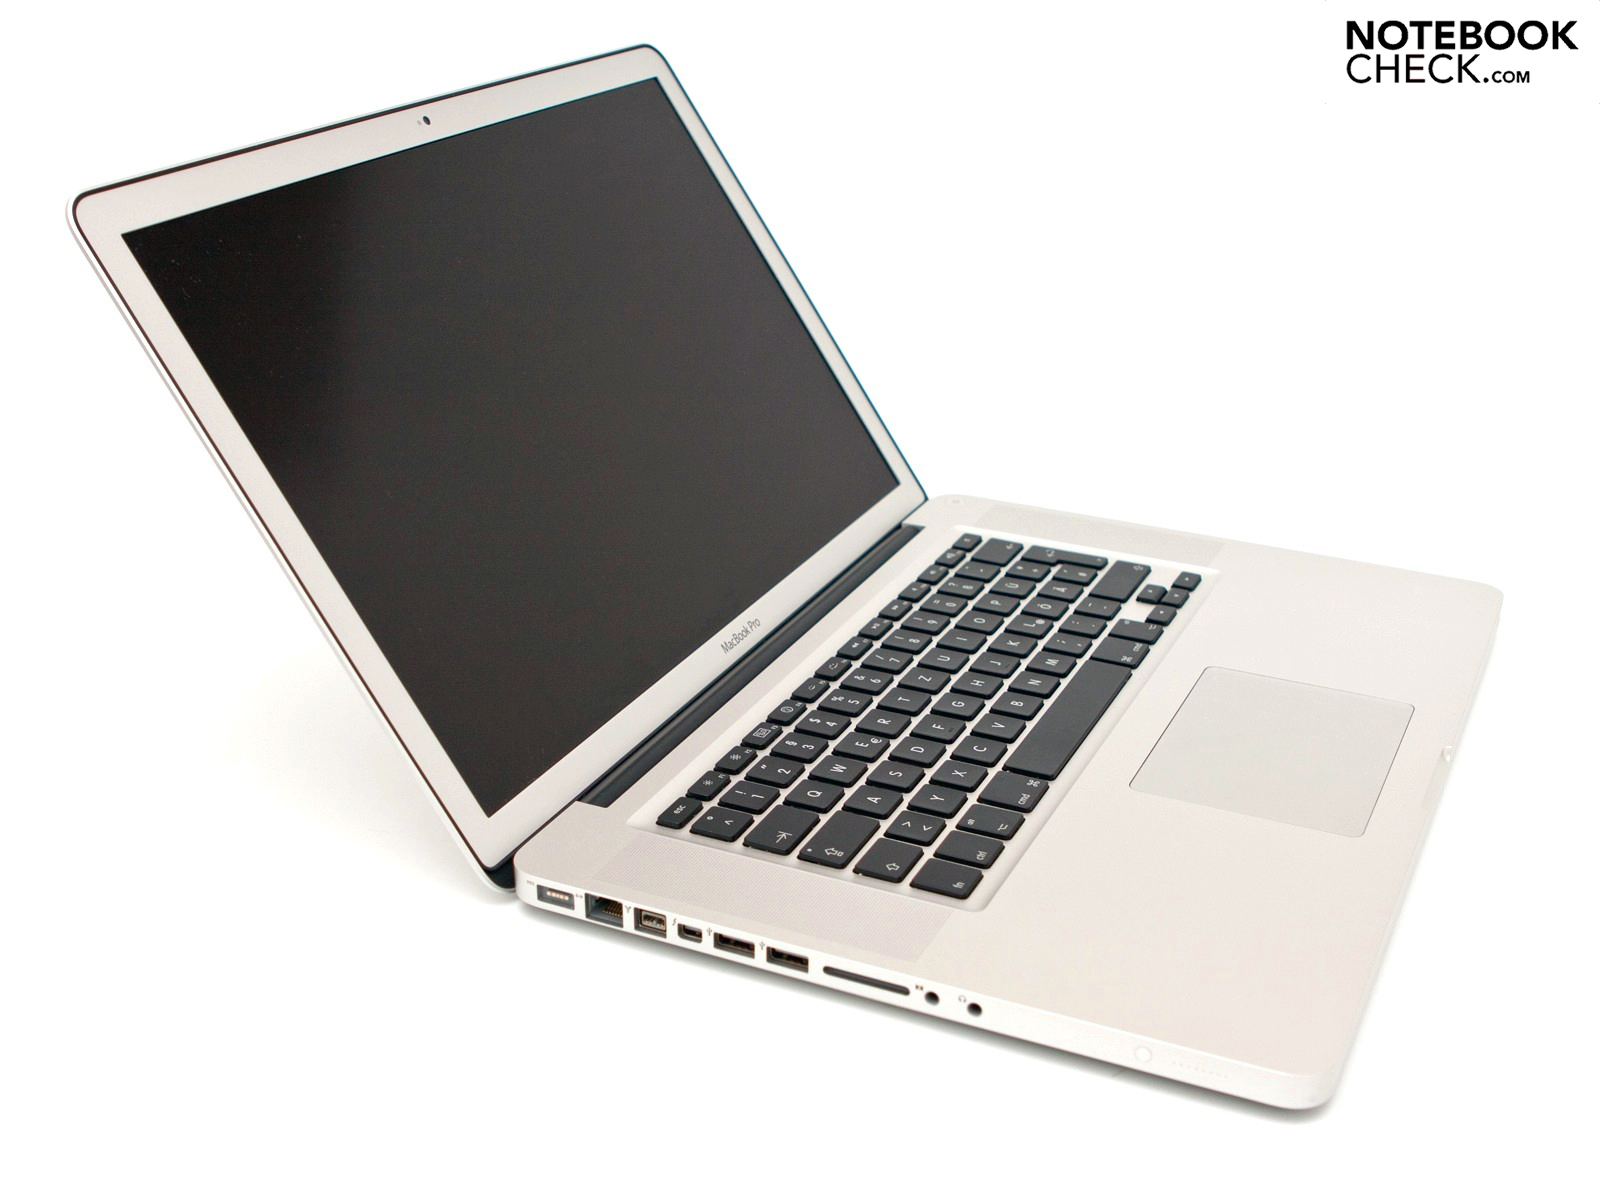 macbook pro 15 - photo #41